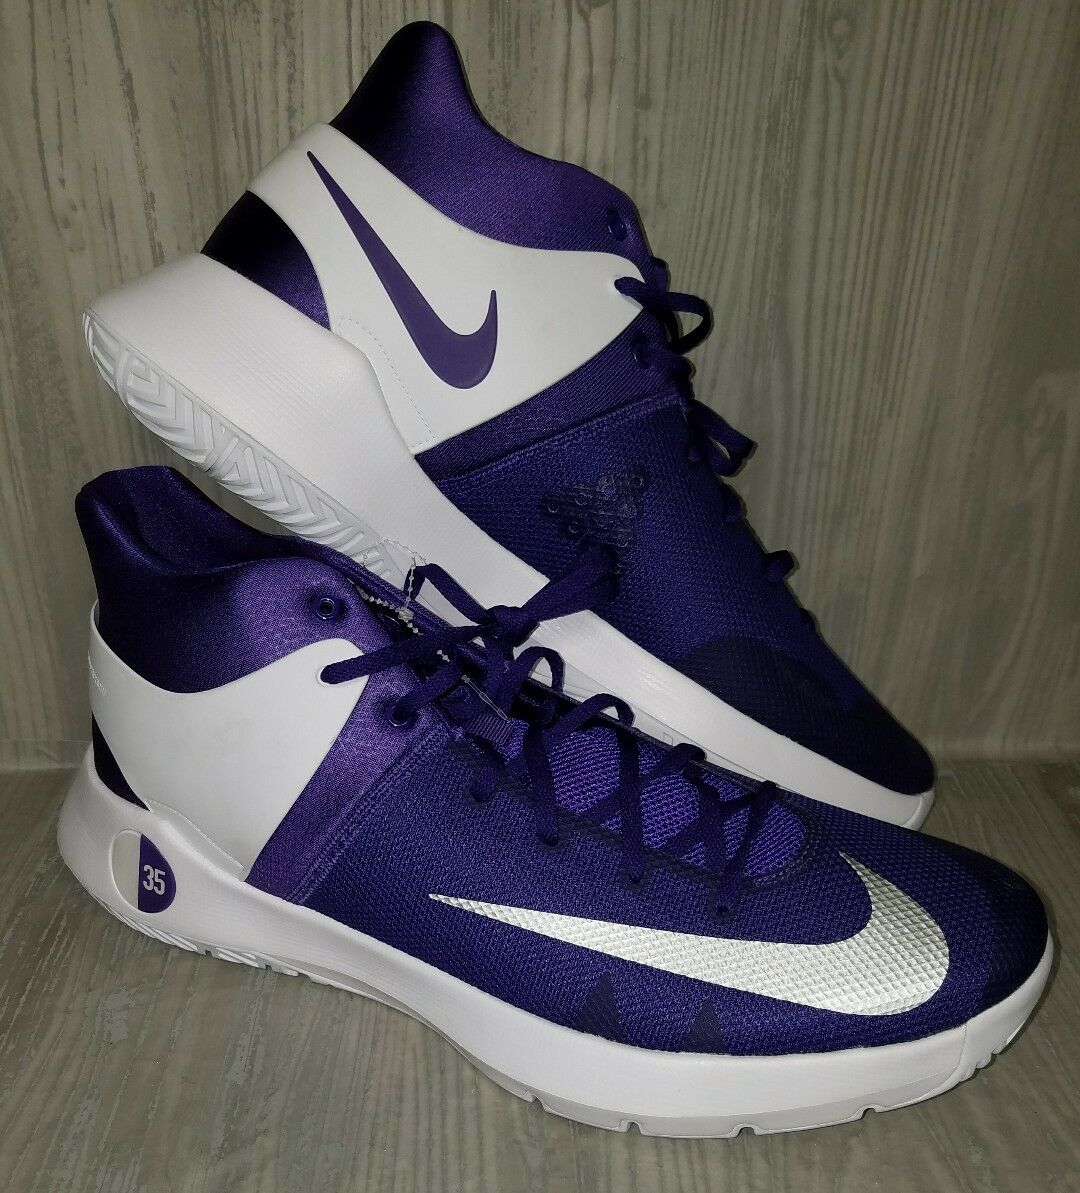 Nike KD Trey 5 IV Purple Basketball Shoes Kevin Durant Price reduction New shoes for men and women, limited time discount